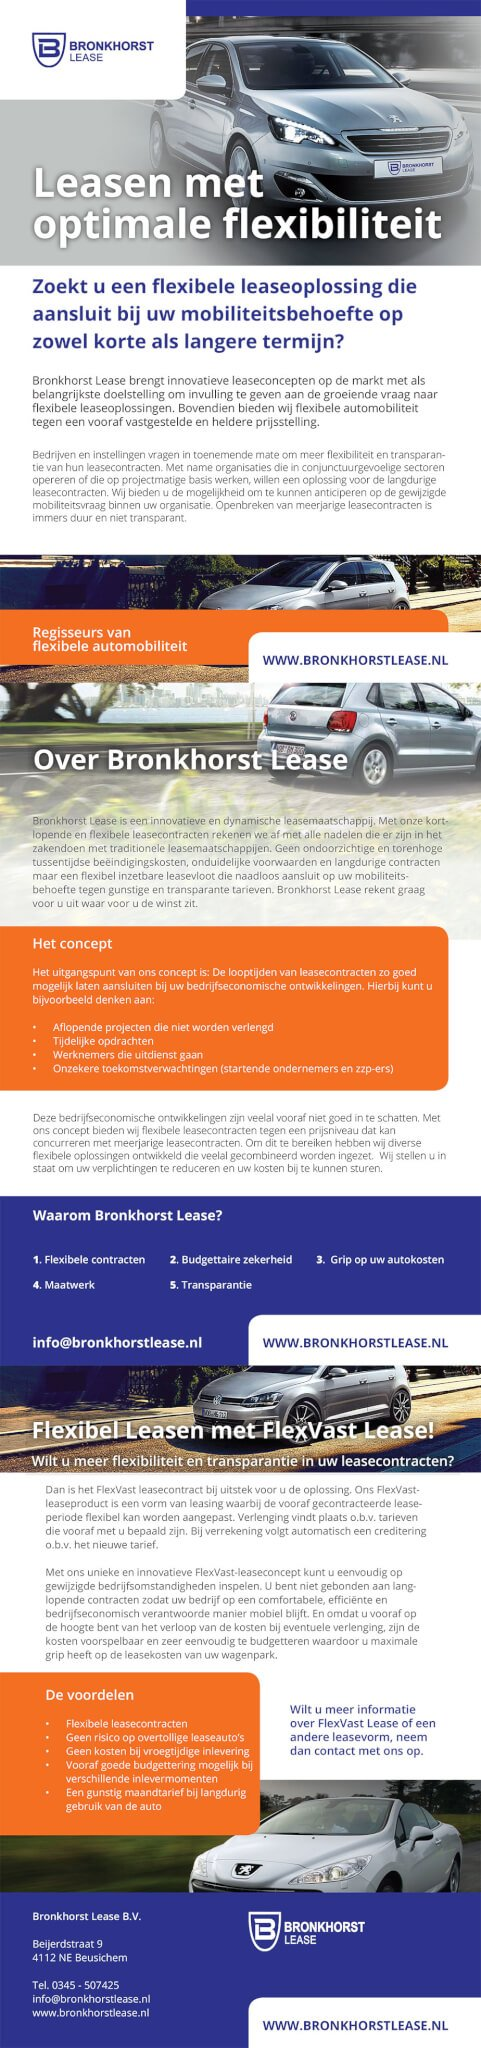 brochureBronkhorst Lease Brochure